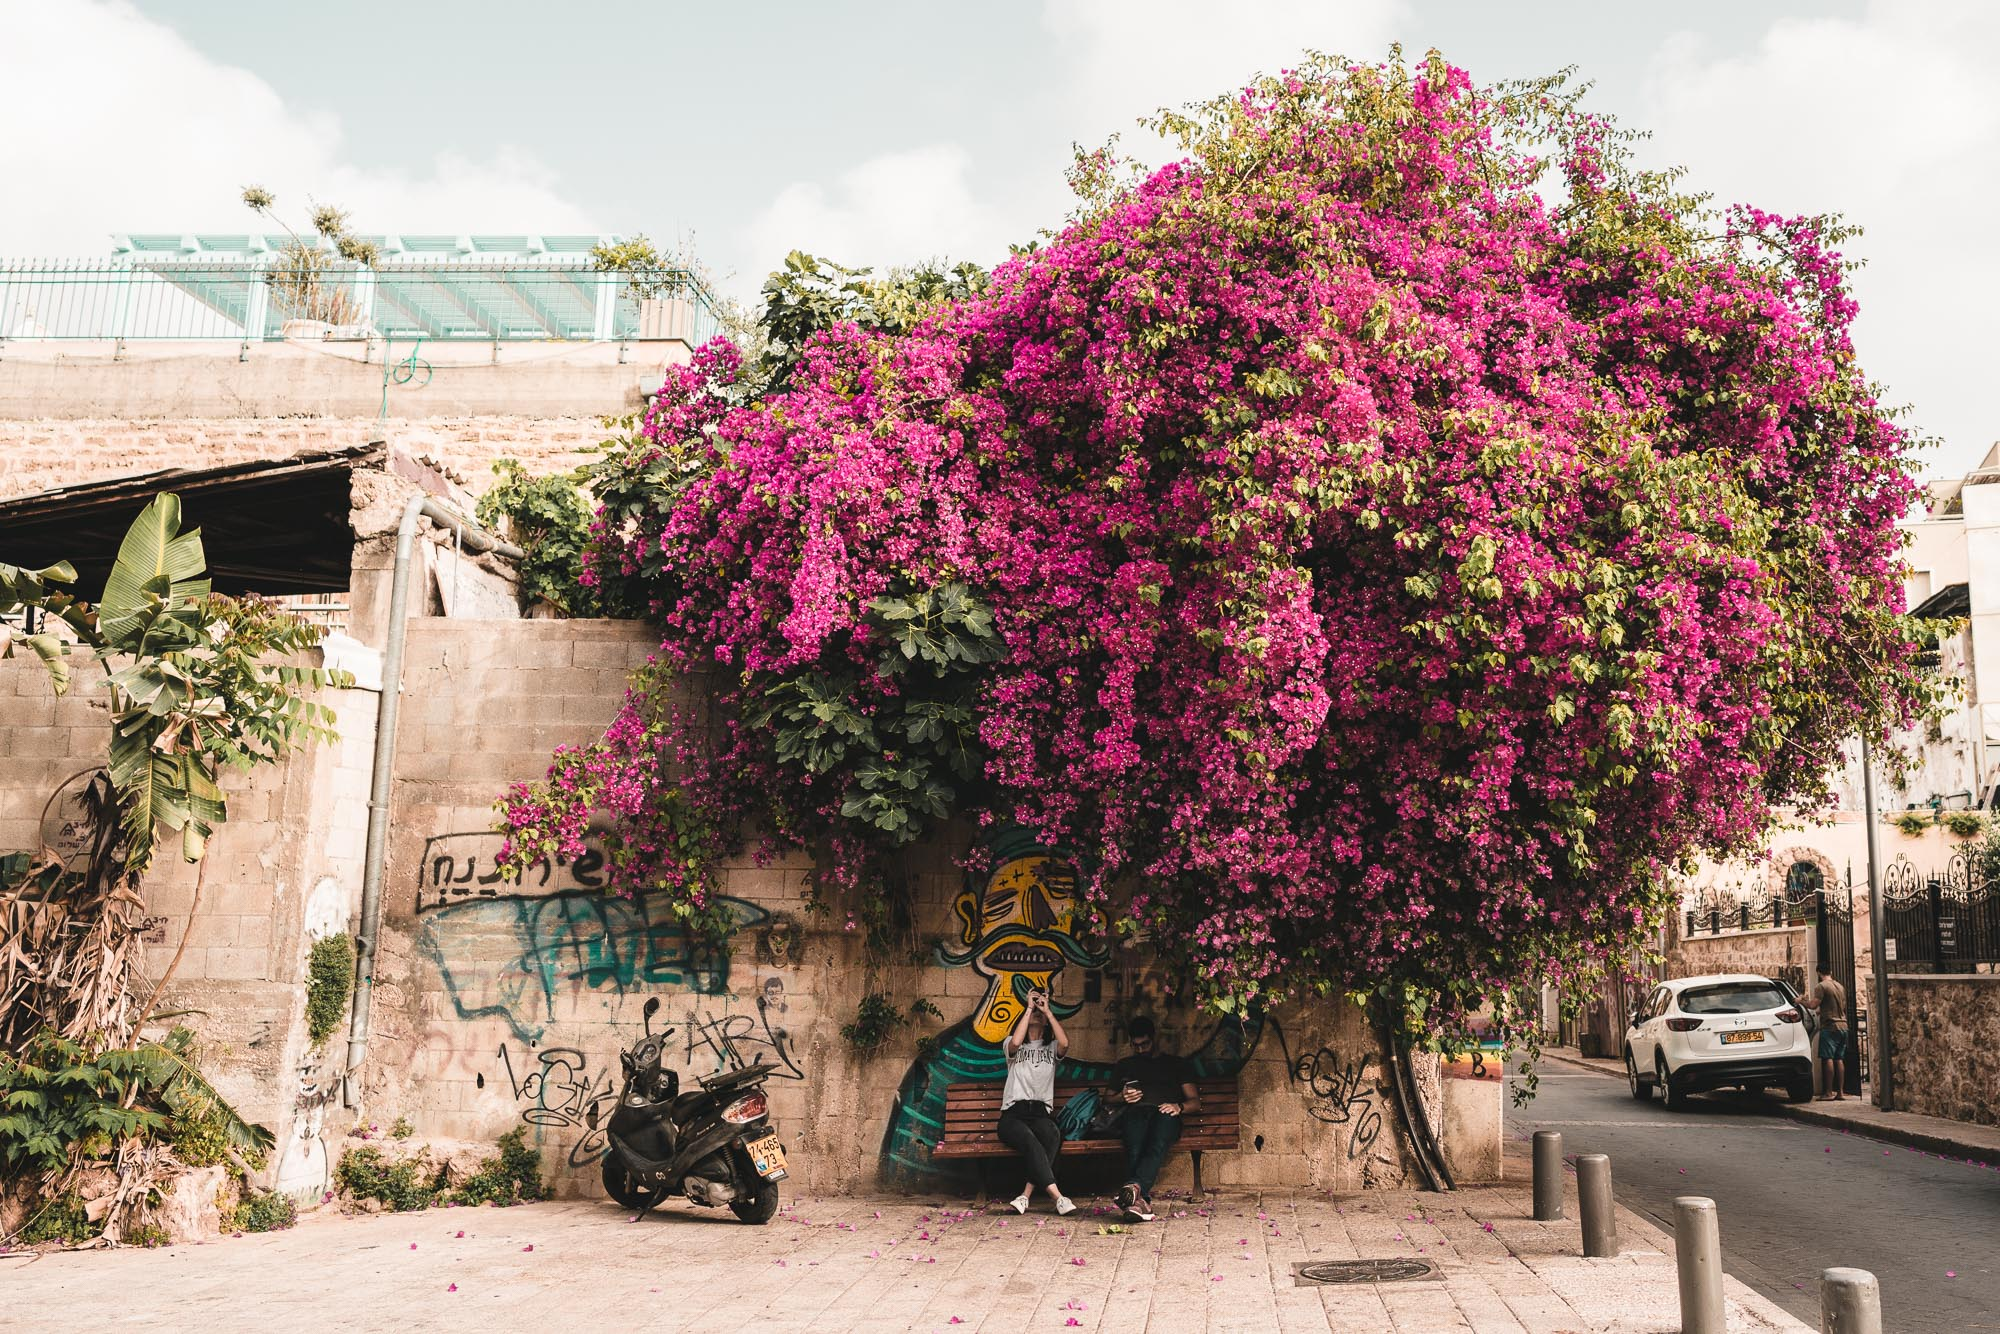 Bougainvillea in the streets of Jaffa in Tel Aviv, Israel